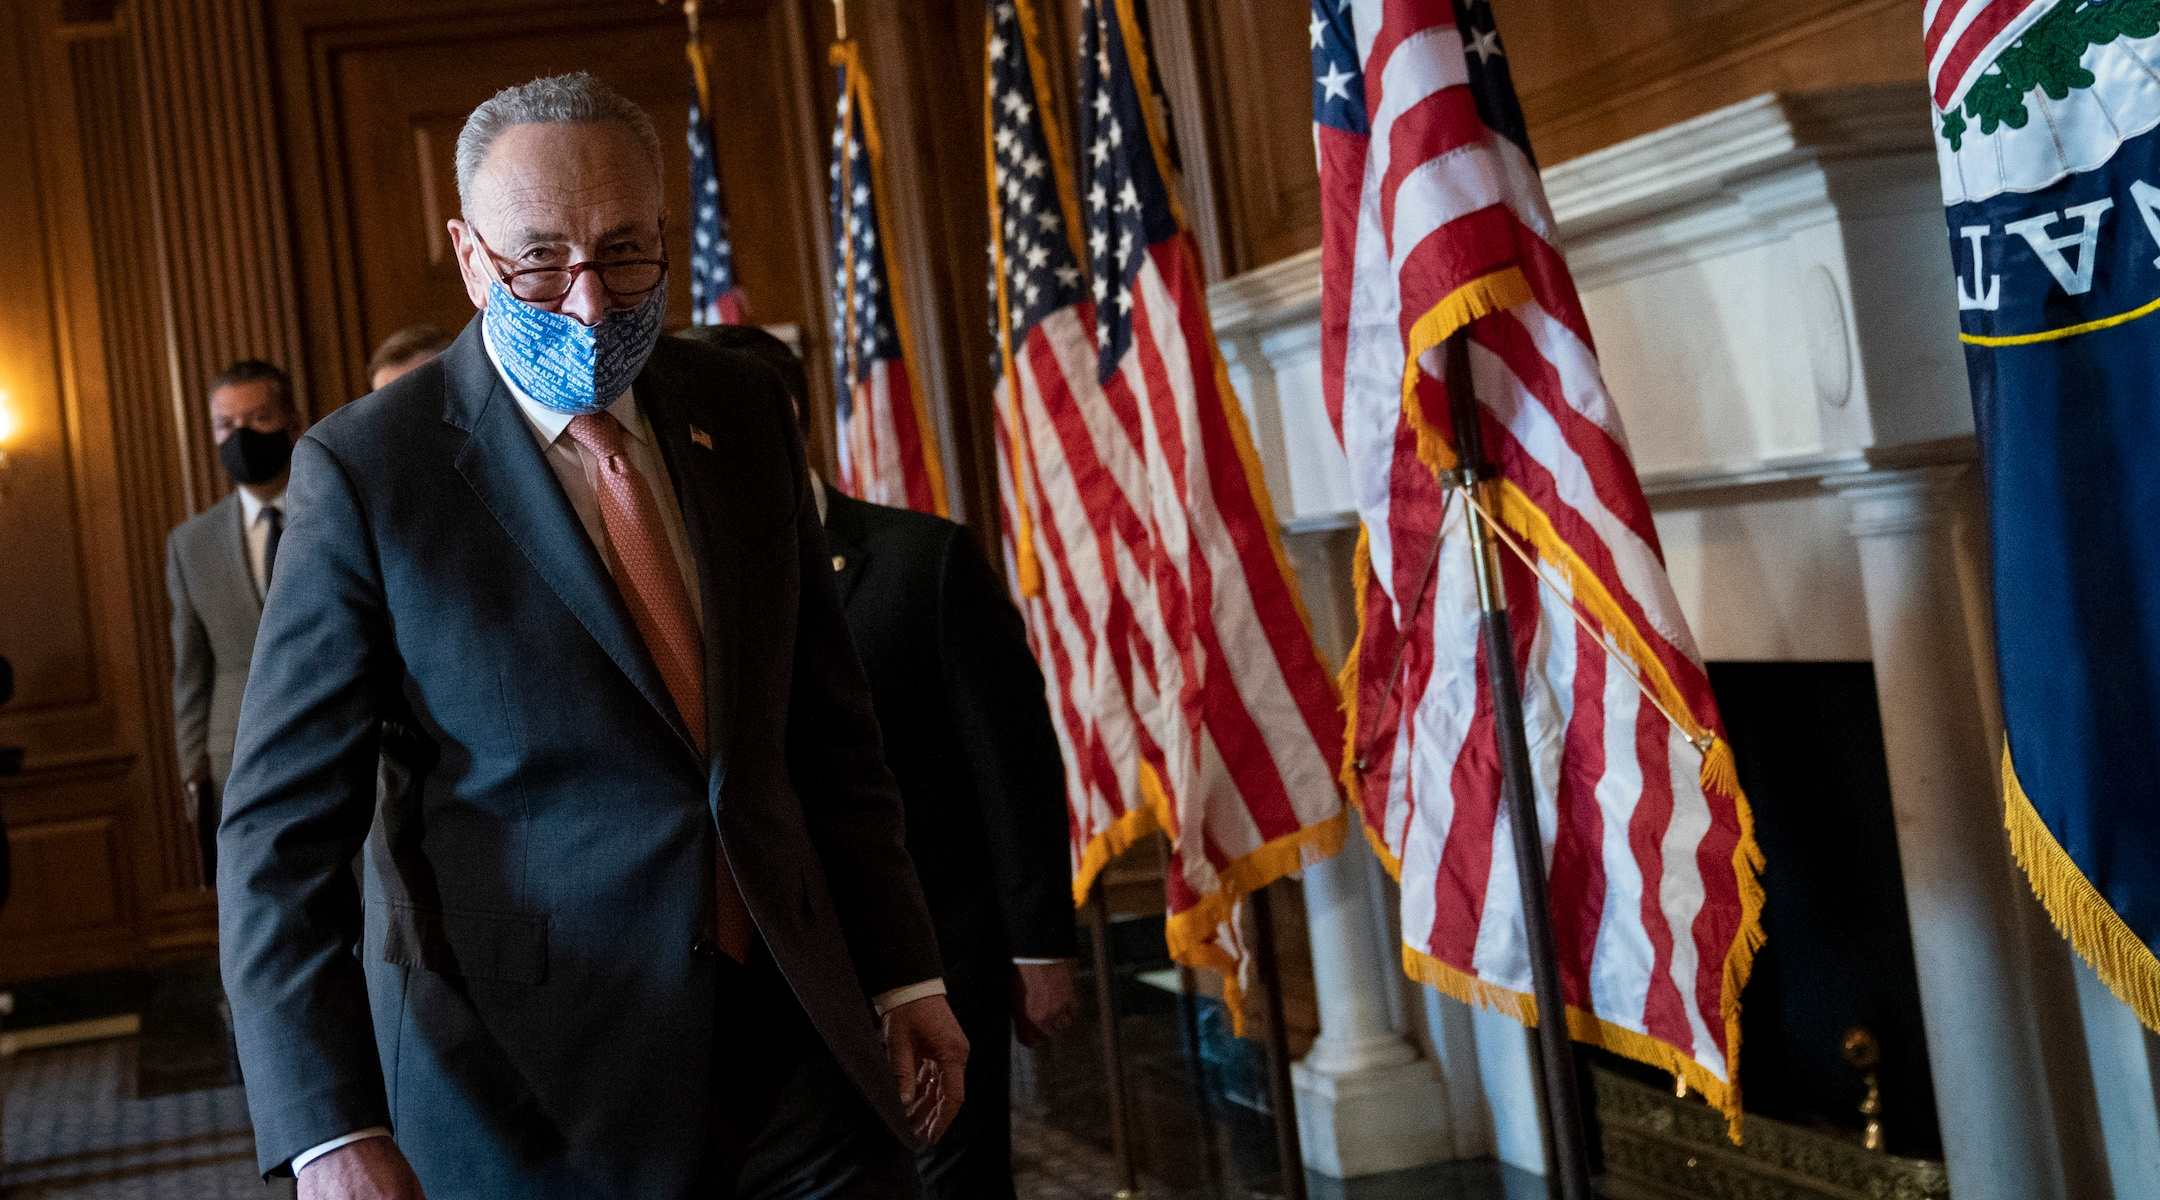 Chuck Schumer is now the highest-ranking elected Jewish official ever. He wants to make more...